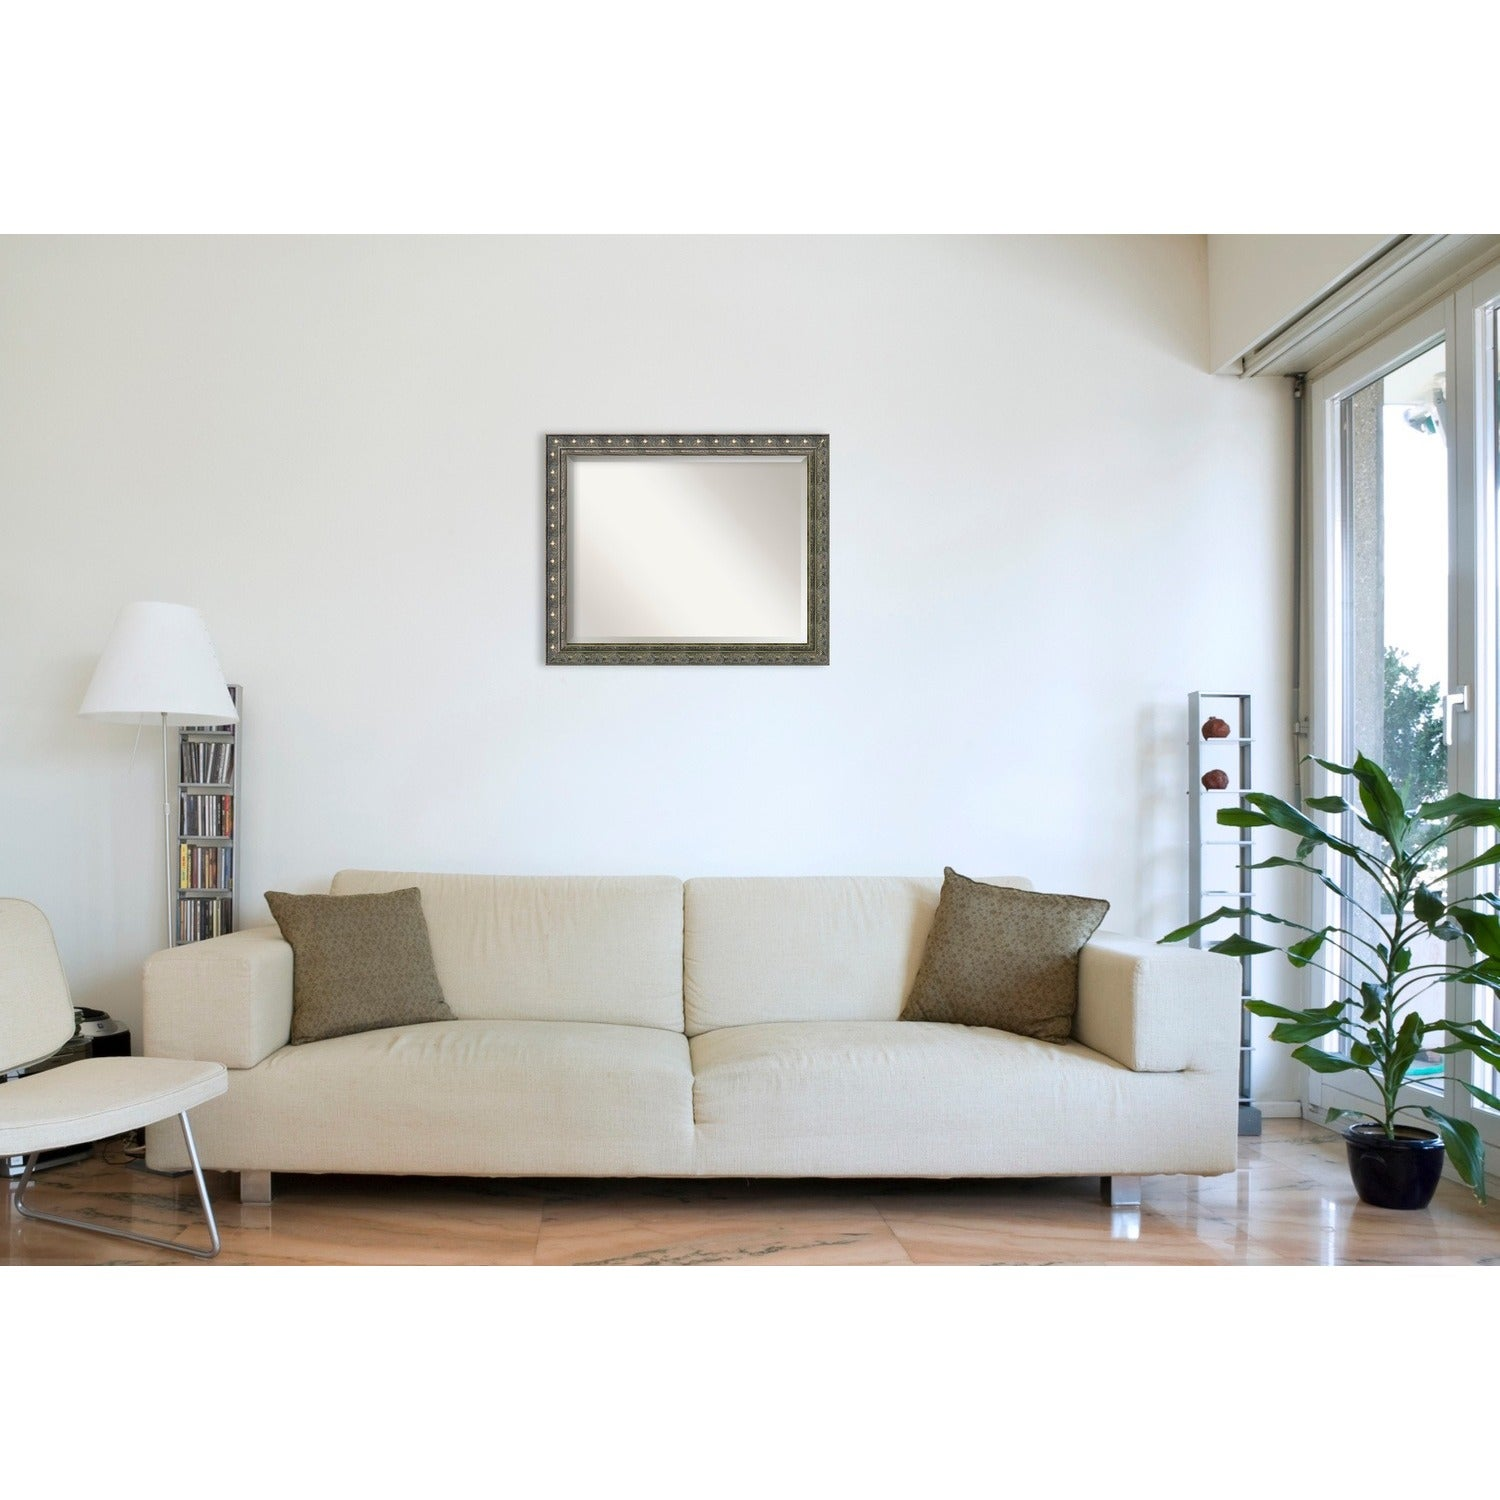 Wall Mirror Large, Barcelona Champagne 32 x 26-inch - Pewter - Free ...